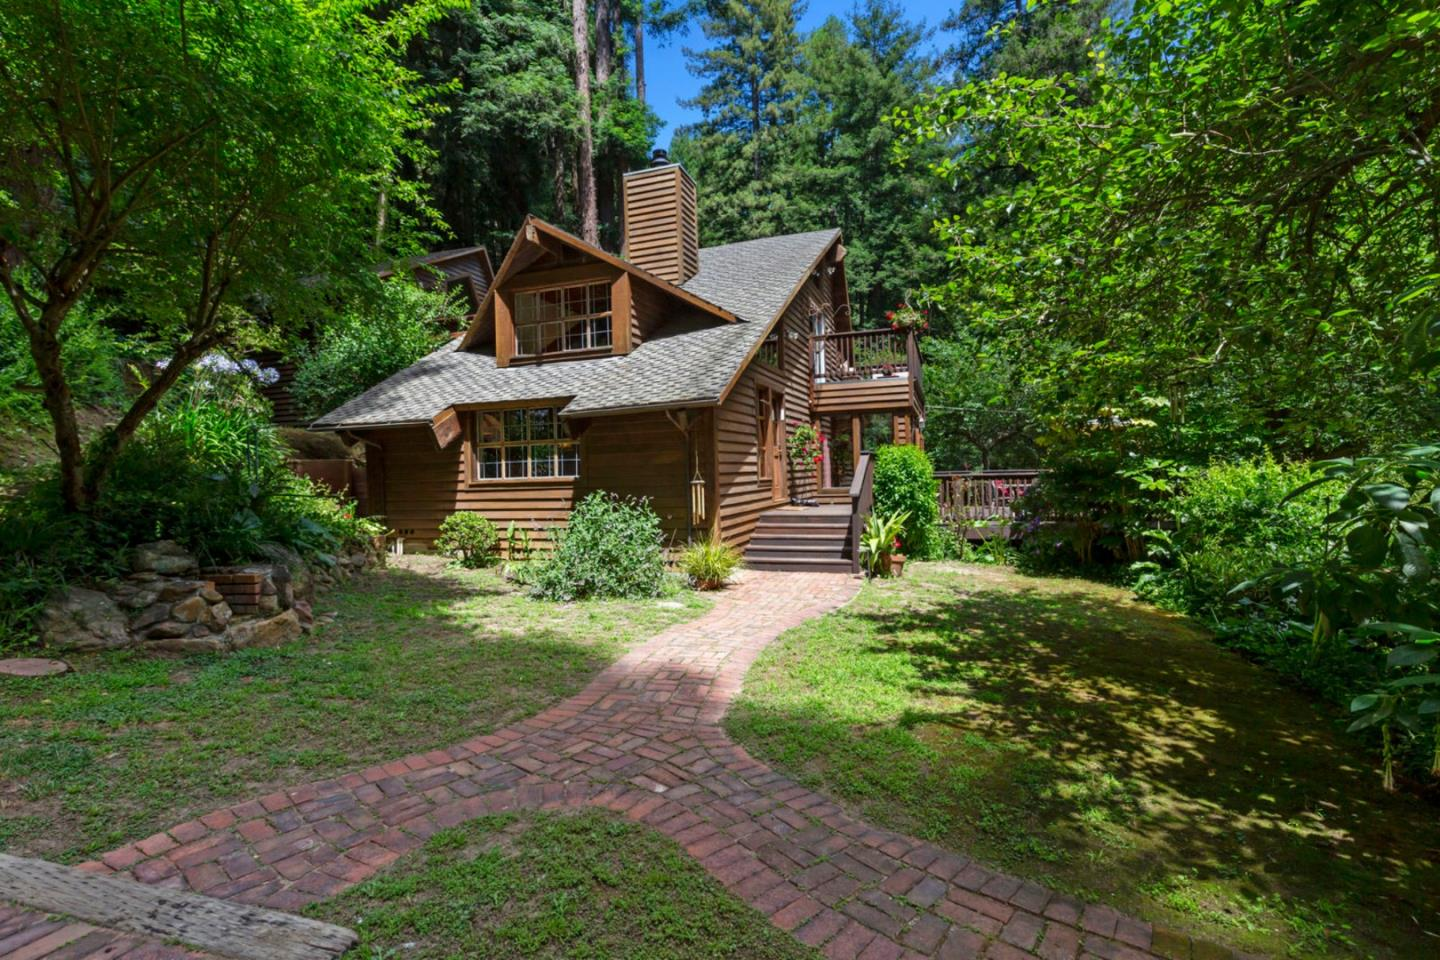 Private Wonderland Home on over 14 acres of pristine property. 3 BR/ 2 BA, 2,007 SqFt charming multi-level interior where natural light glistens in every room with over sized windows. Dramatic vaulted ceilings with living edge redwood beams. Living room has a stone fireplace with a woodstove insert. Large kitchen with breakfast bar and dining area opens to a sunroom. Master suite bedroom with an ensuite bathroom. 2 bedrooms have loft areas that provide additional space and room arrangement options. Fresh paint and carpet, and newer hot water heater. Exterior siding is built with heart redwood milled on the property! There are several decks to enjoy the peaceful nature surrounding the home. Well water and 5,000 gal water tank. Beautiful Corralitos location just walking distance to Windy Oaks Winery and a quick drive to popular Corralitos Market and Sausage Company and Corralitos Brewery! Enjoy a walk up to the top of property, have a glass of wine and take in the beautiful views!